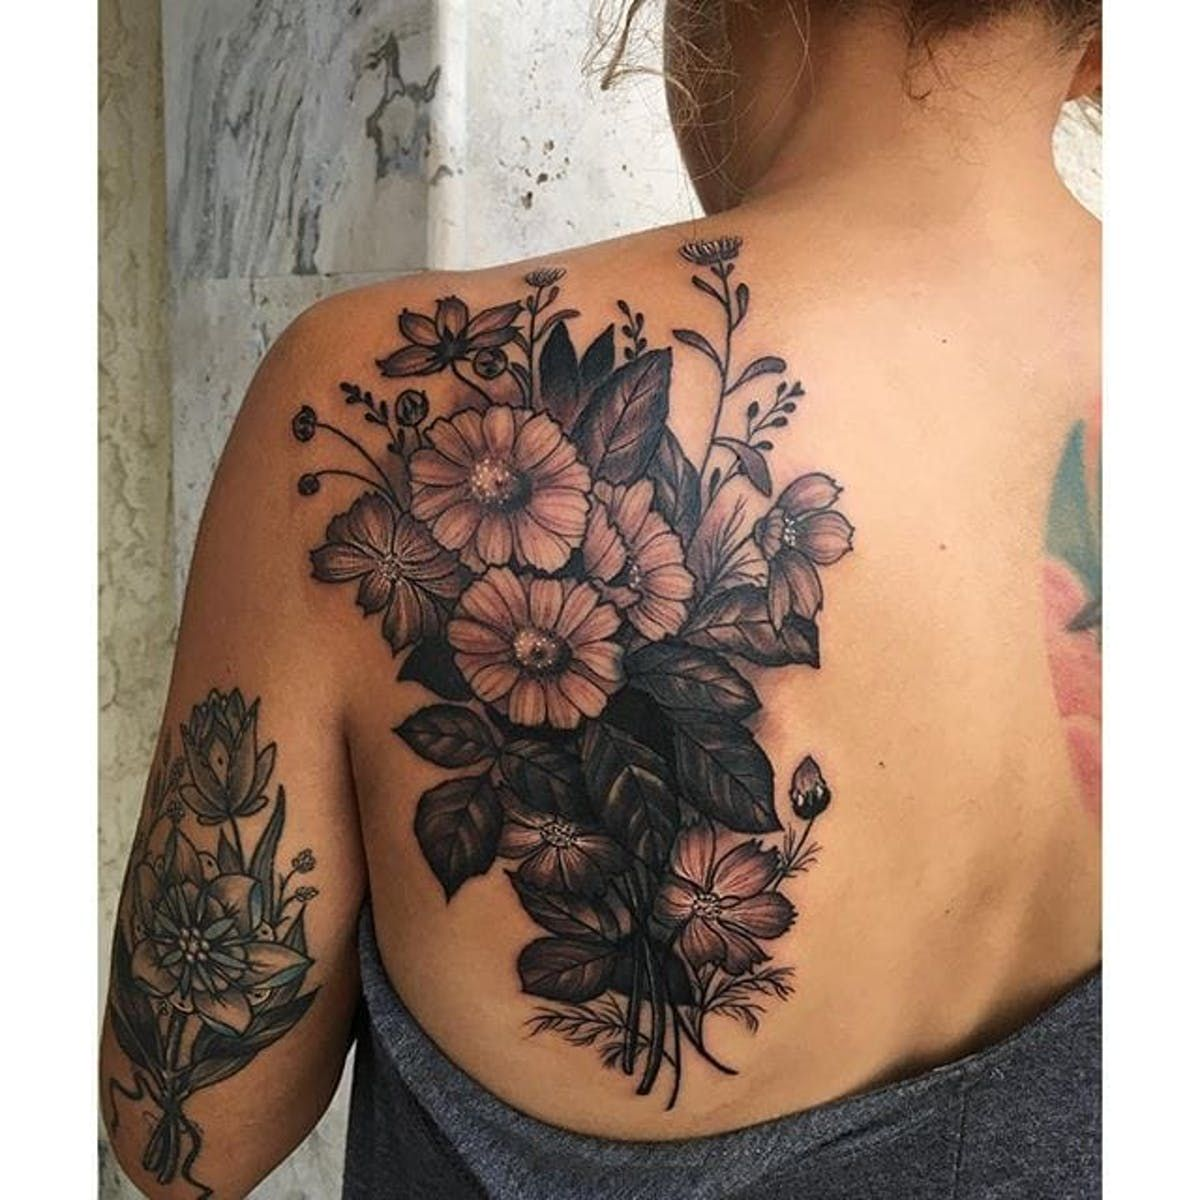 10+ Amazing Upper back tattoo cover up ideas image HD